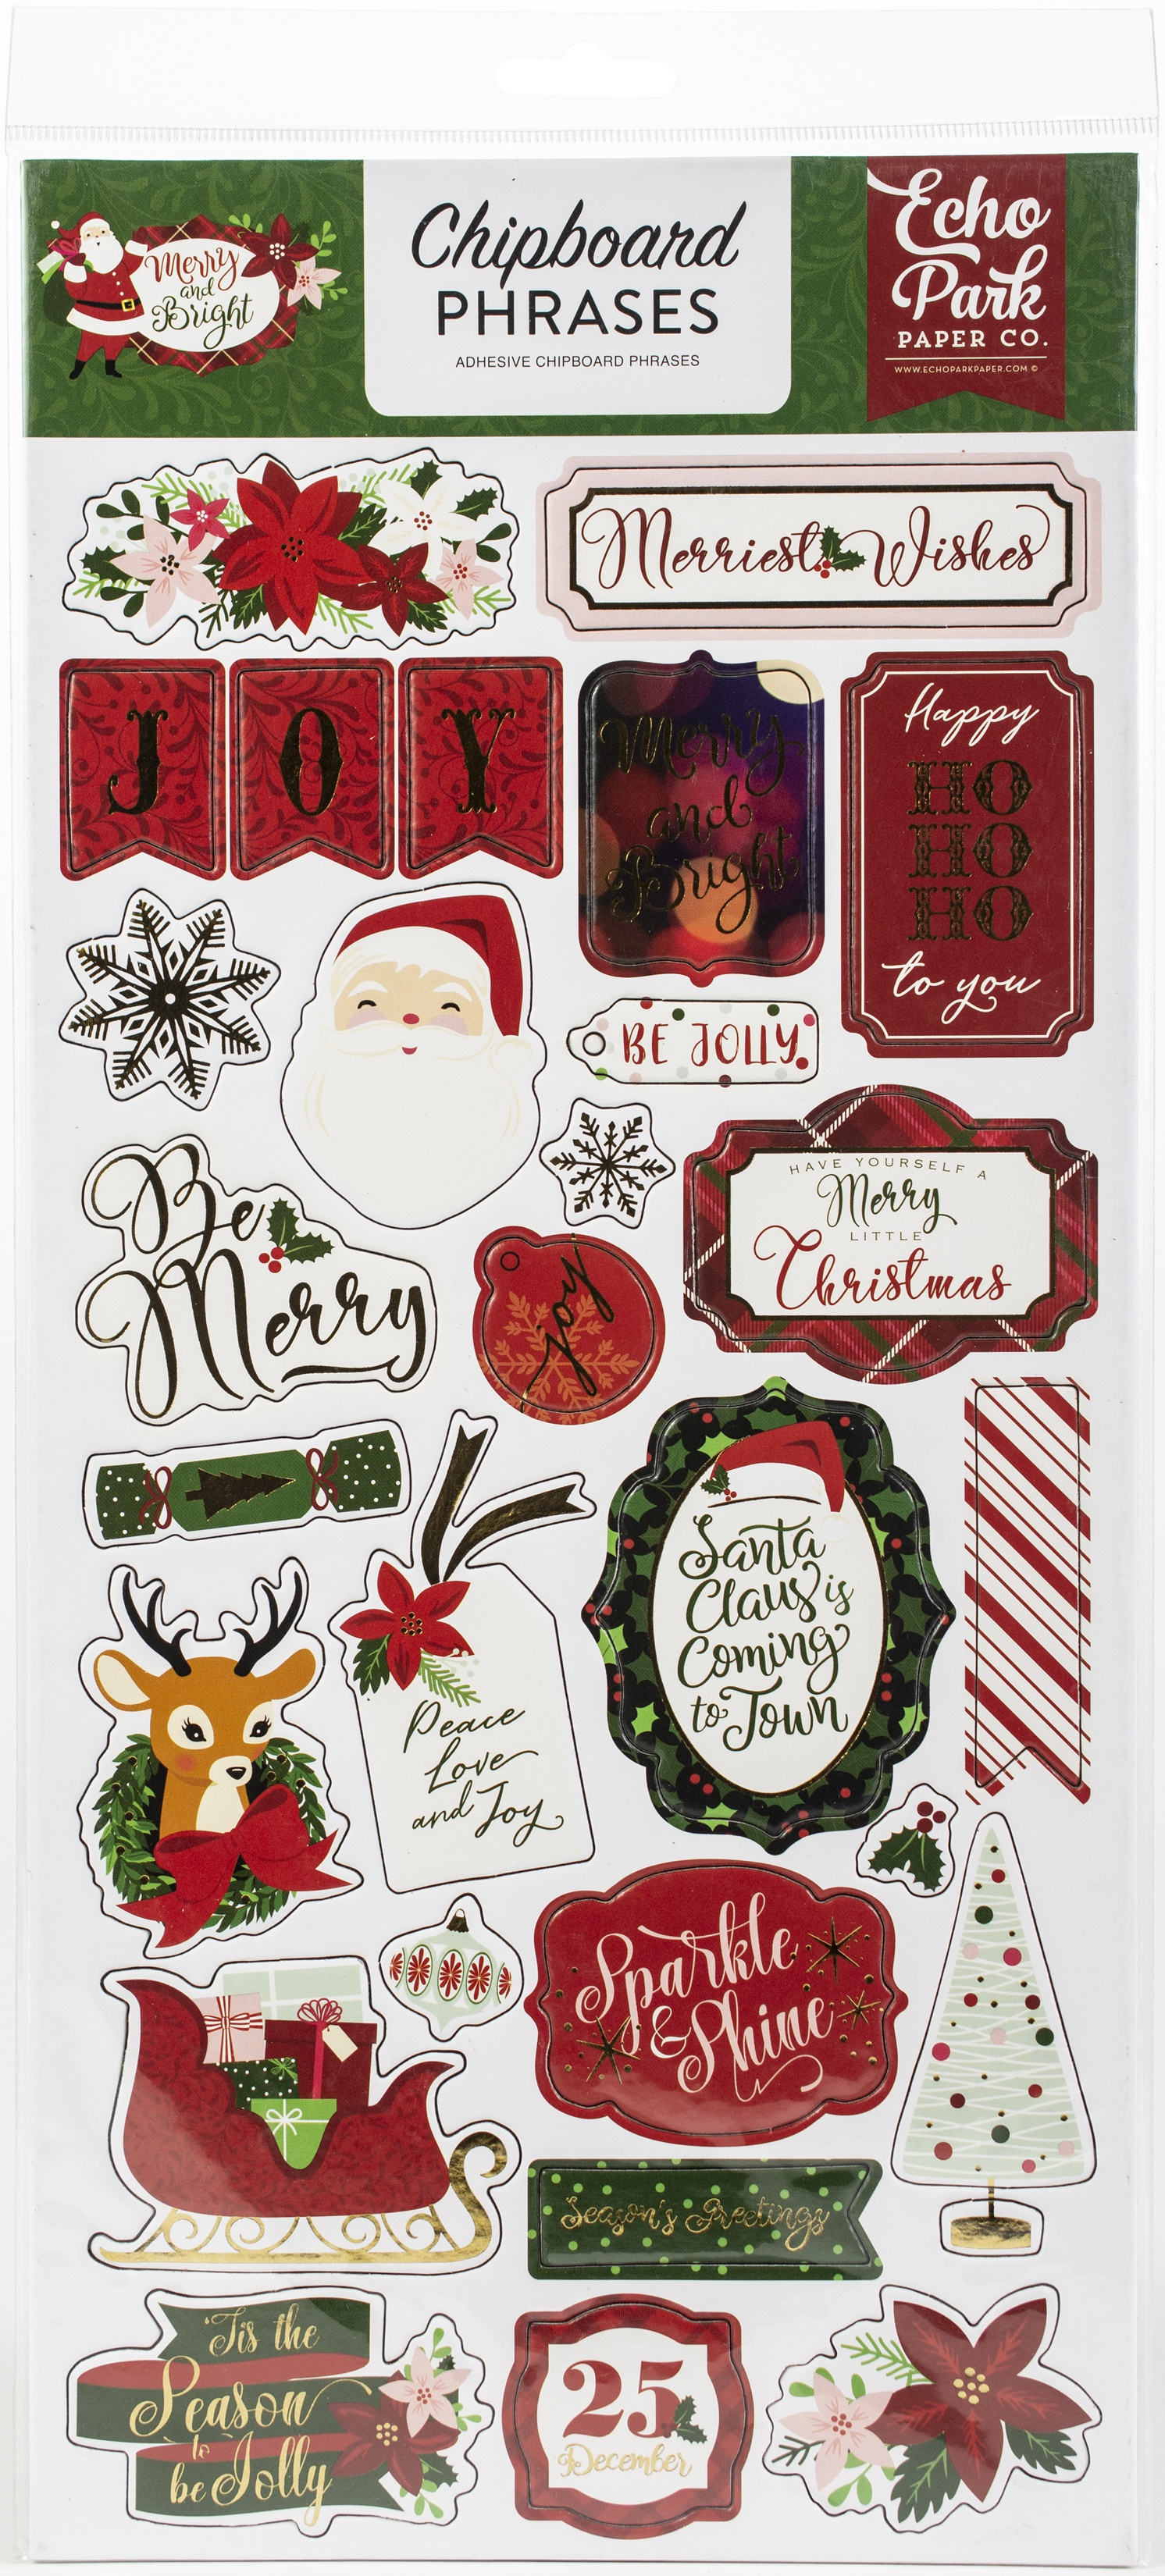 Echo Park Chipboard Phrases Merry and Bright